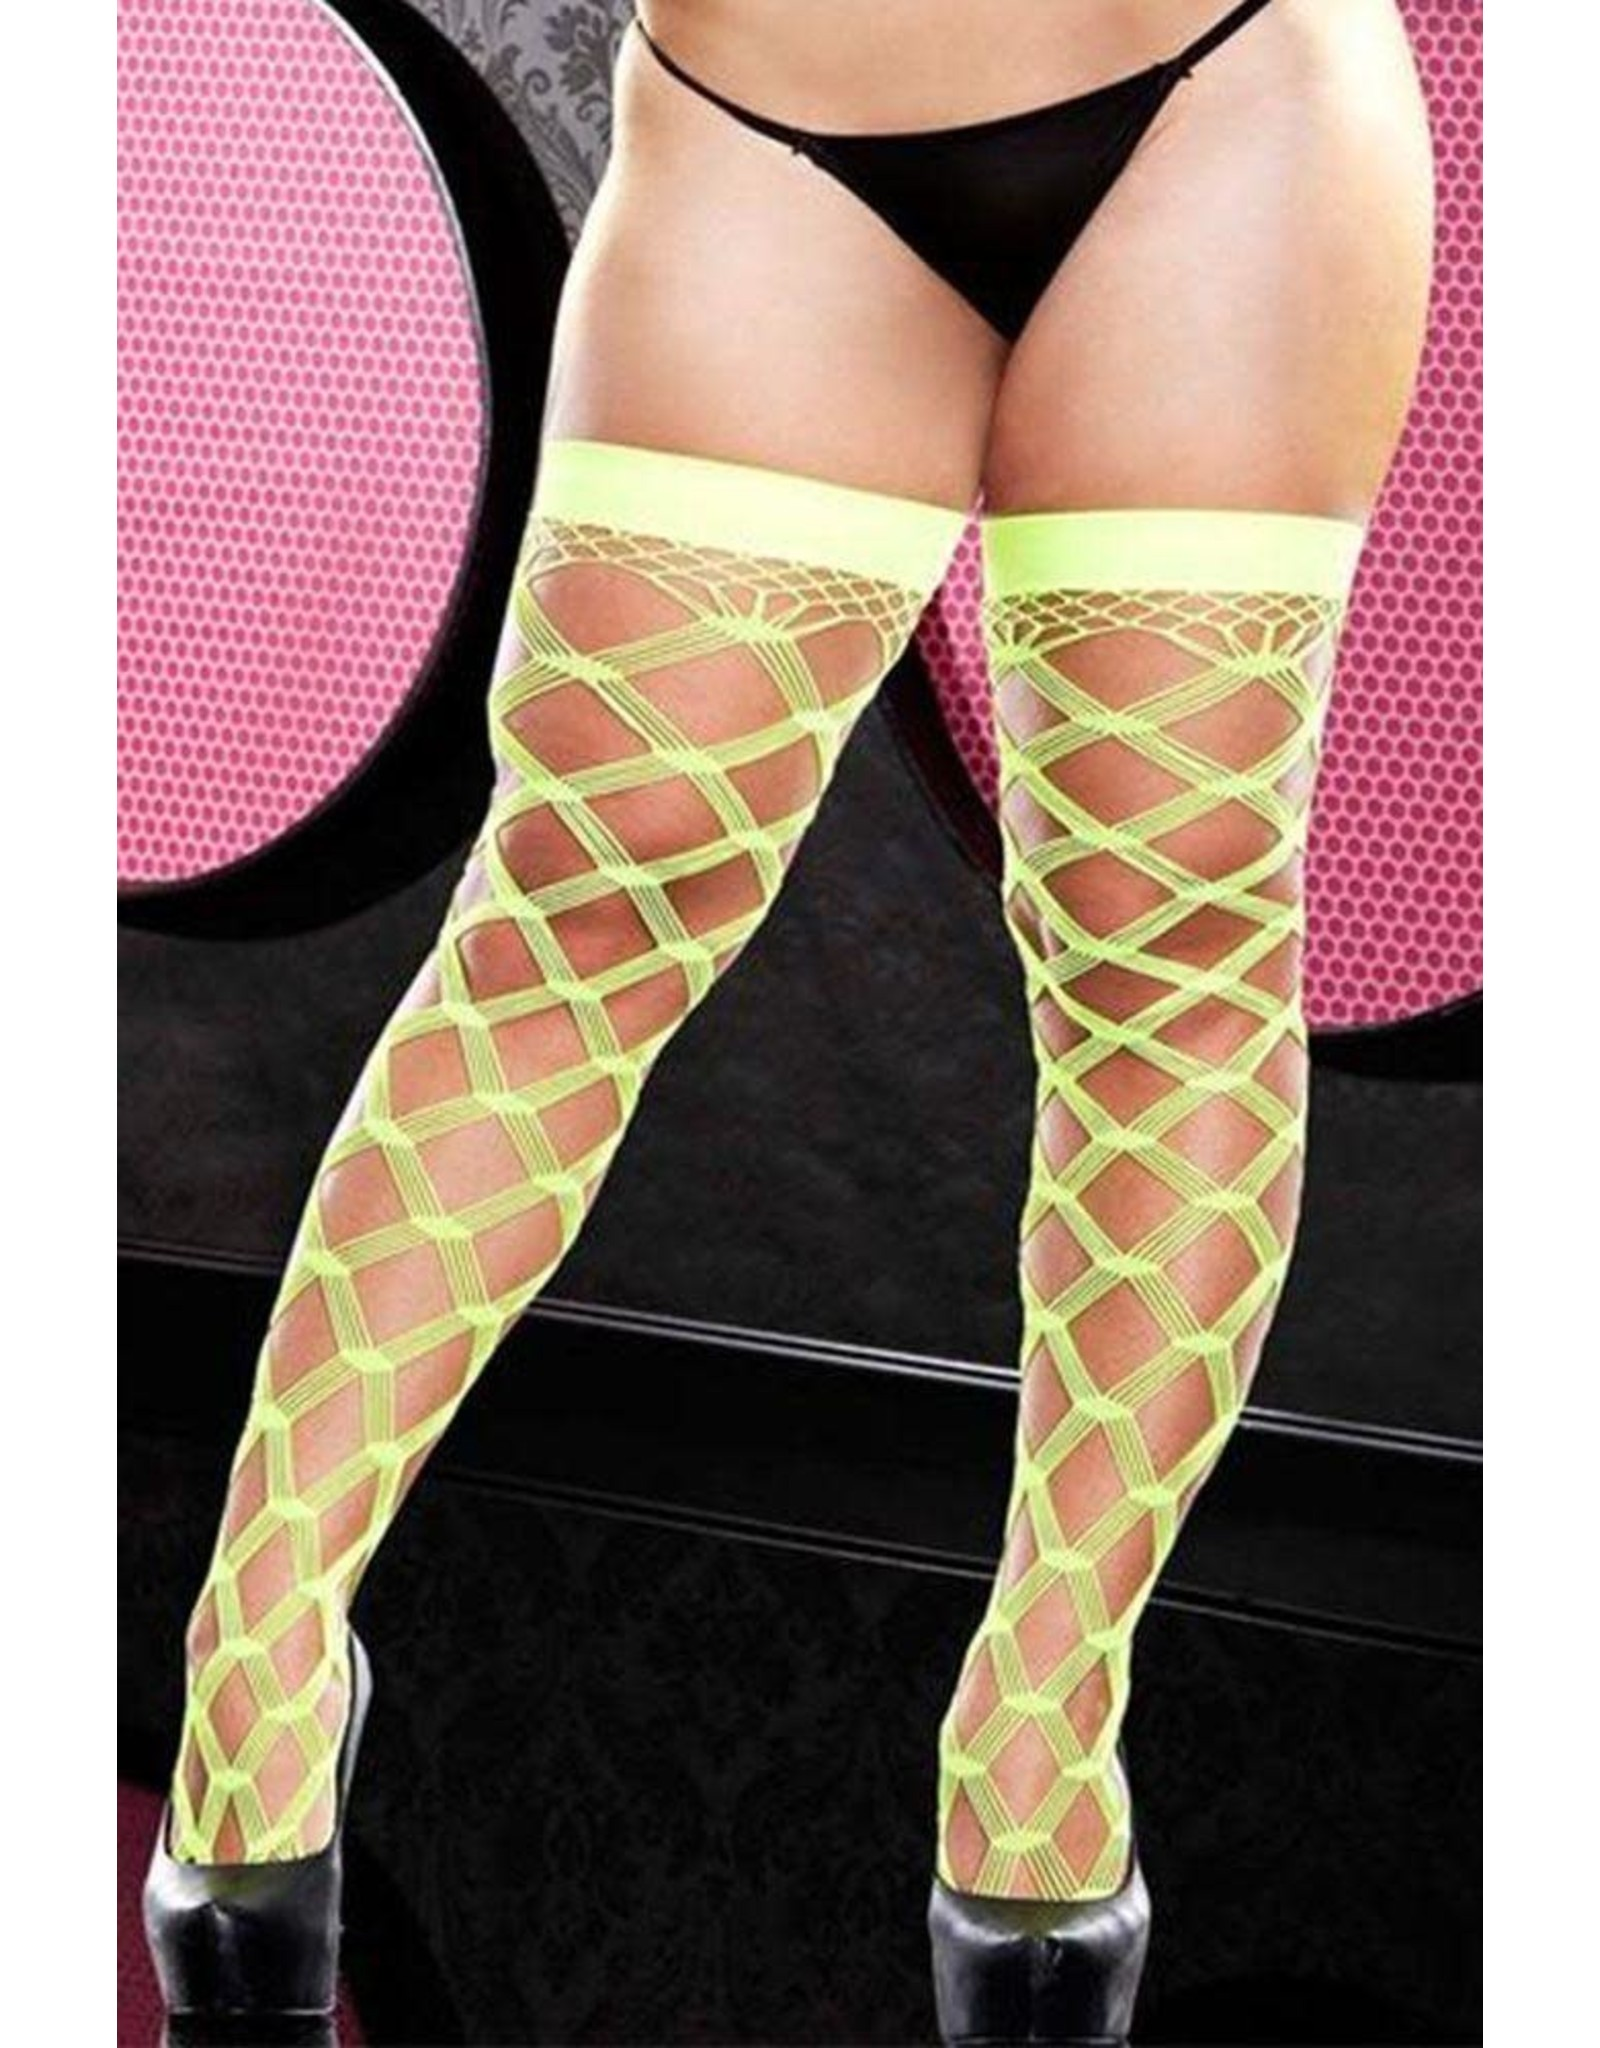 LAPDANCE LINGERIE DIAMOND NET THIGH HIGH OSXL - YELLOW